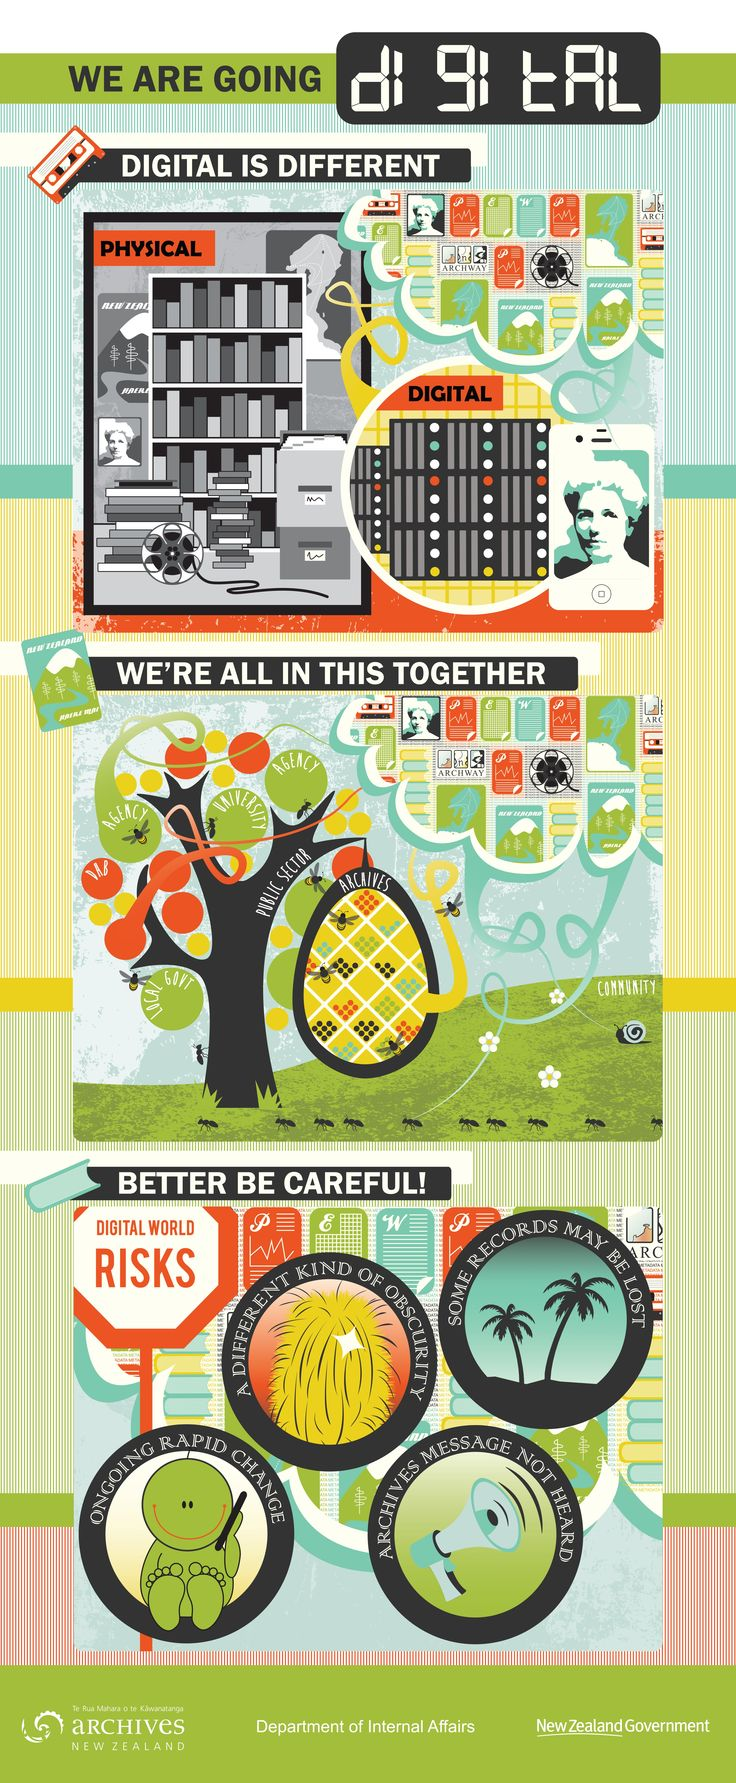 """Archives NZ - """"We are going Digital"""" #infographic"""